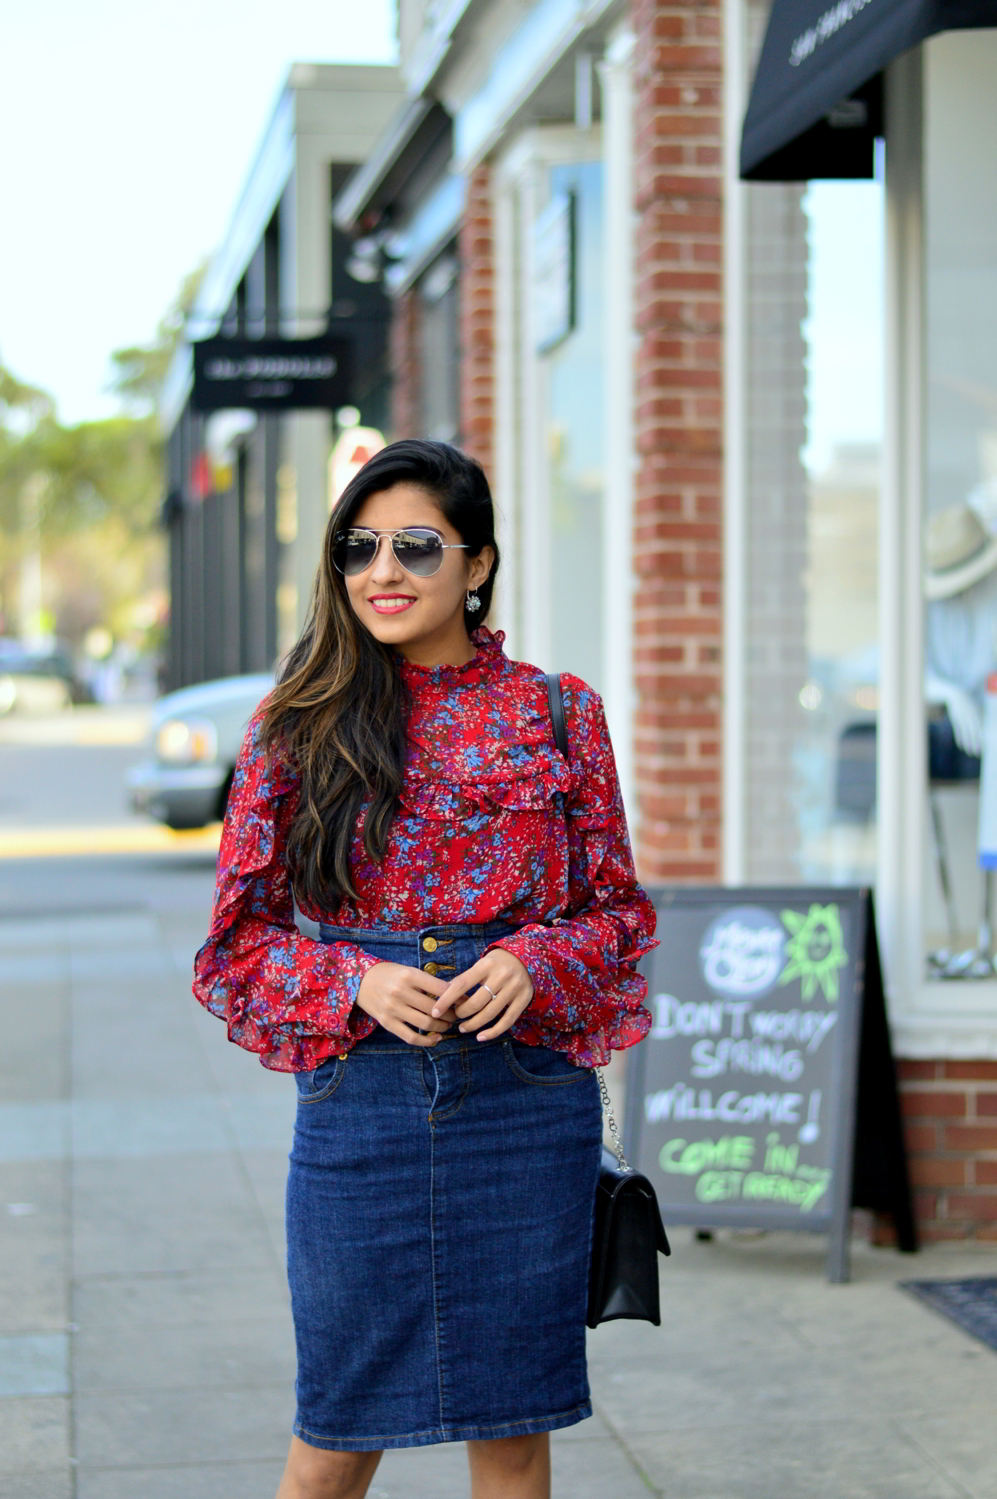 ruffles-floral-top-spring-style-high-waisted-denim-skirt-blogger-outfit 8